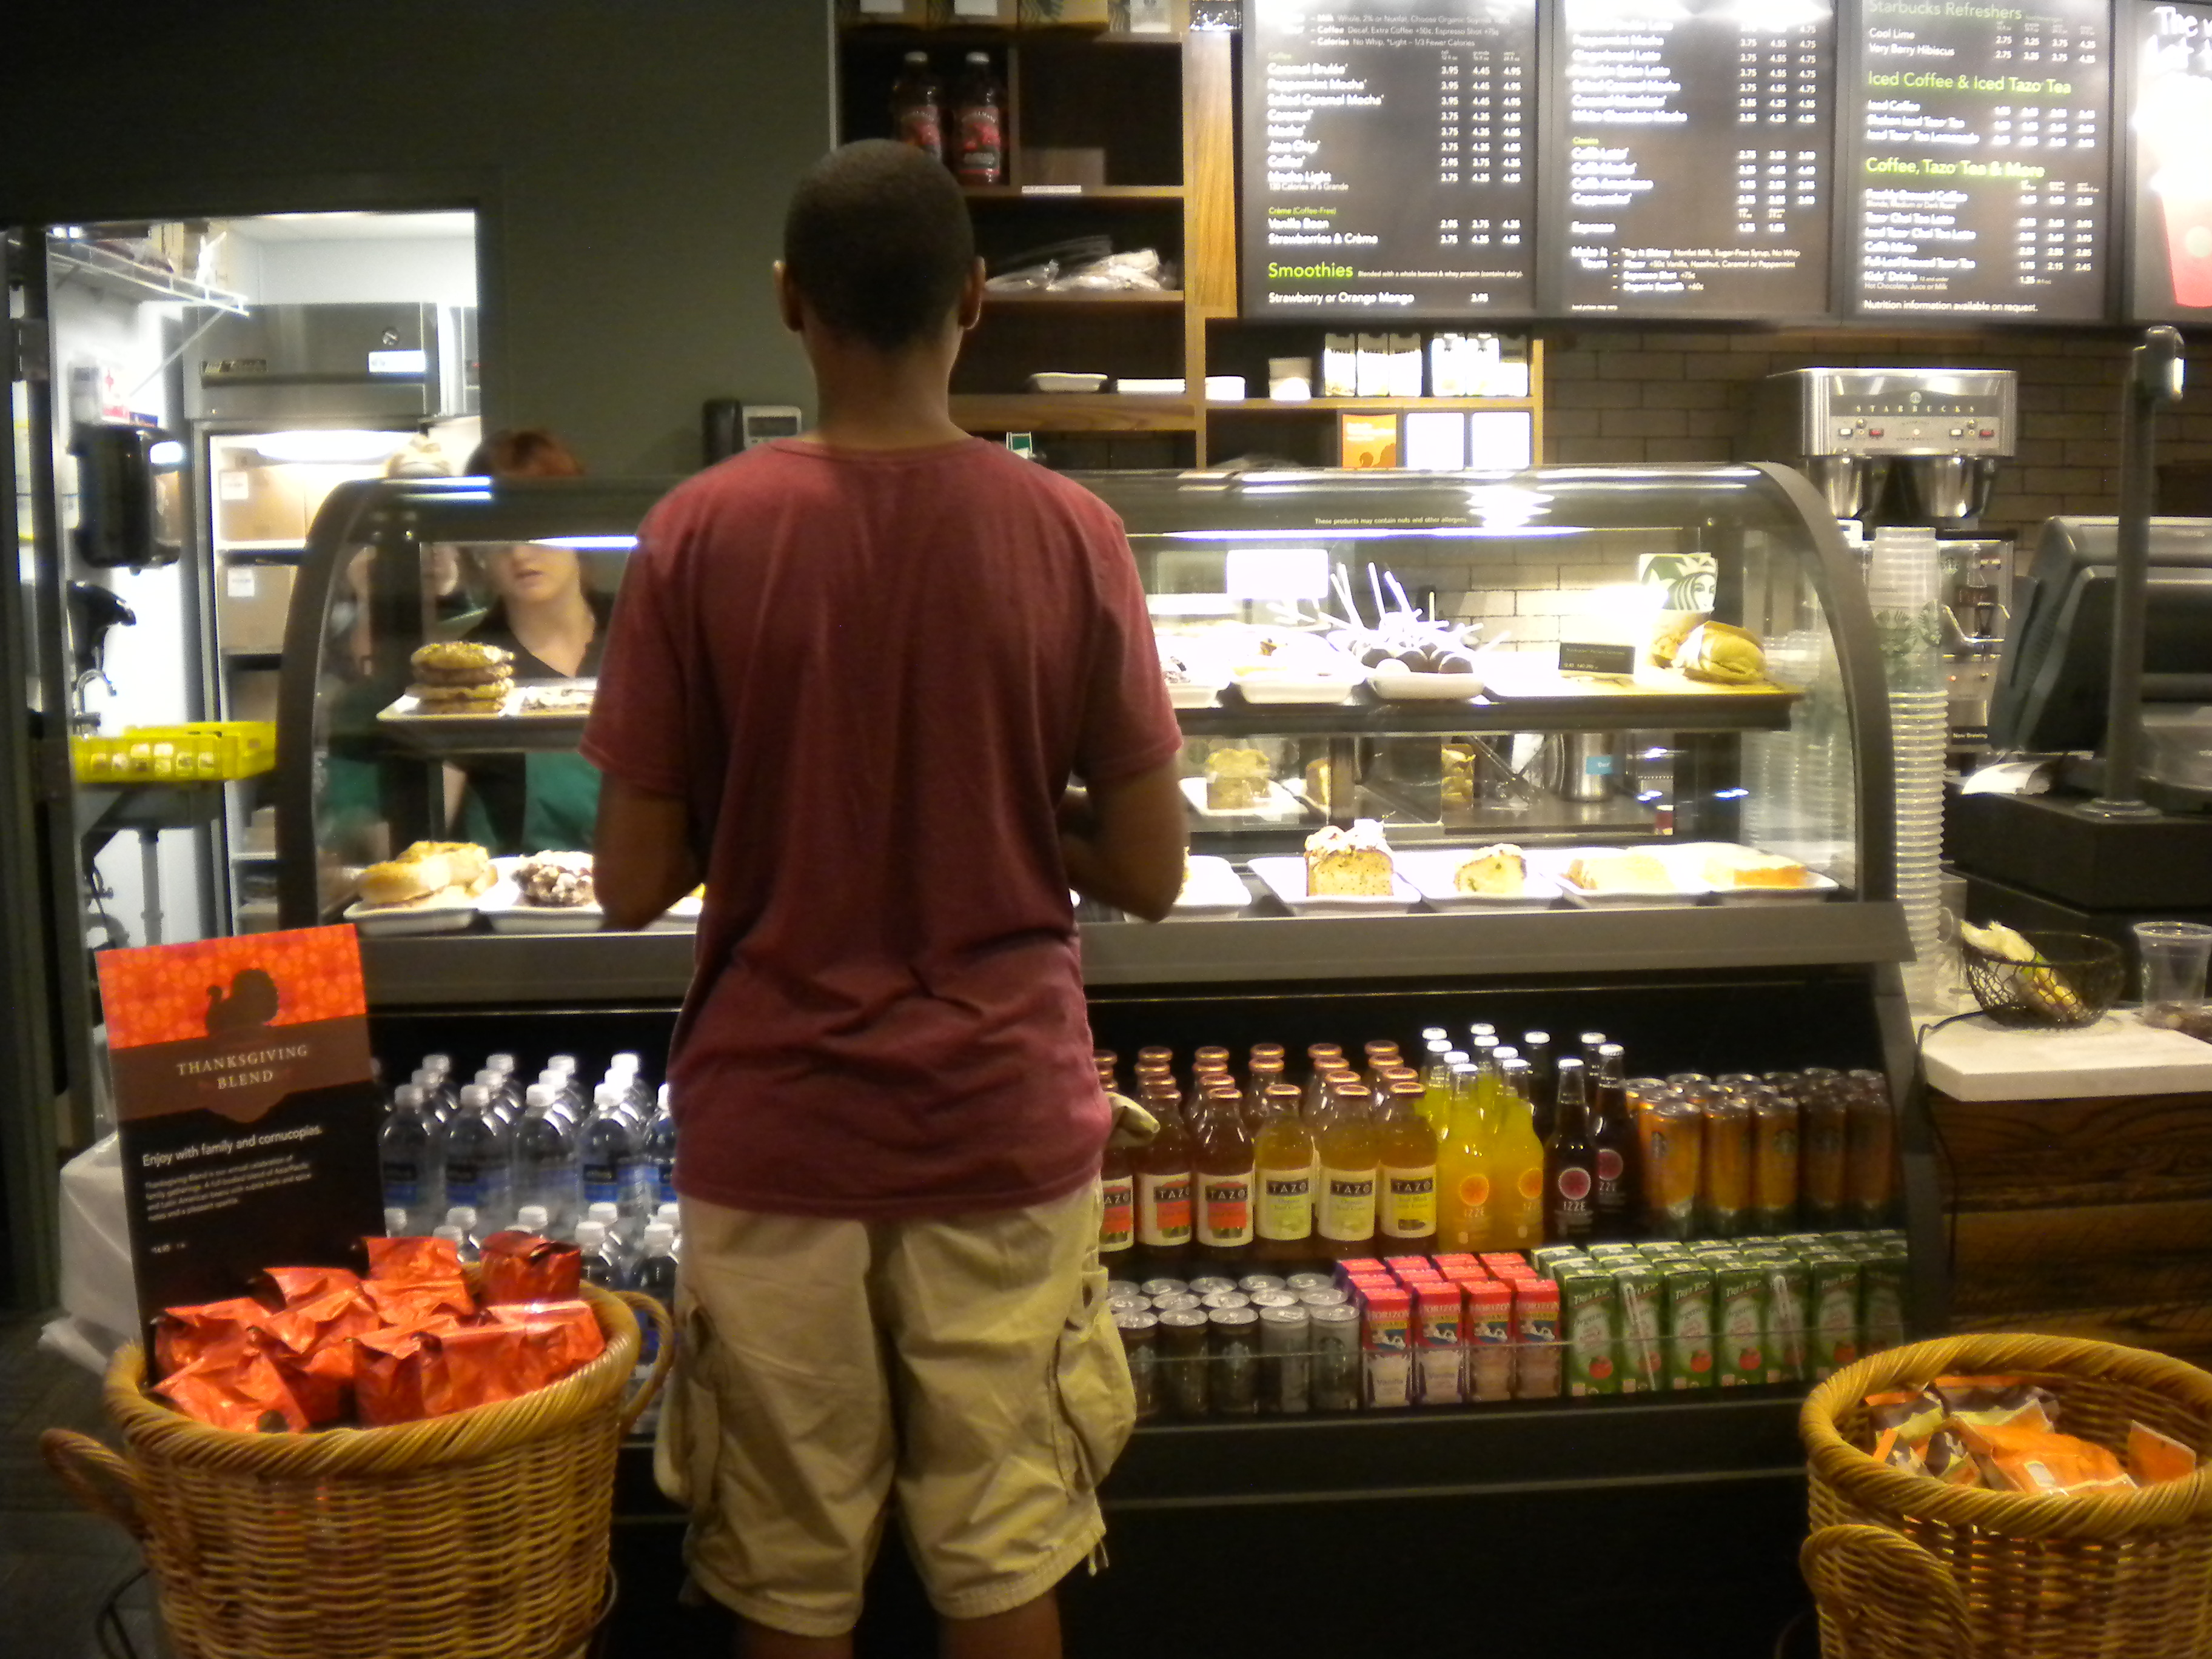 Starbucks creates competition for community coffee shops